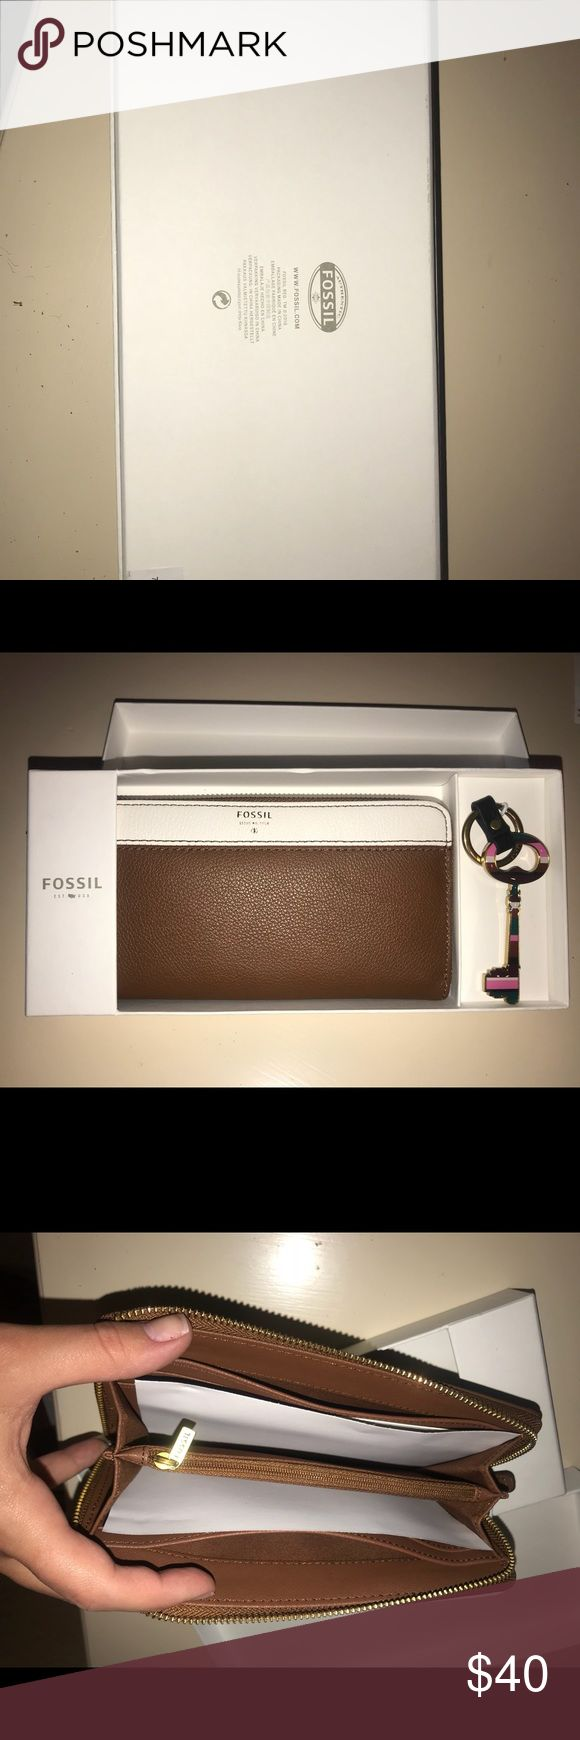 NWT Fossil Brown/Cream Clutch/Wallet plus Keychain Cute brown clutch that can be used as a clutch or wallet. An iPhone plus even fits in it! Comes with a cute keychain as well! Fossil Bags Clutches & Wristlets